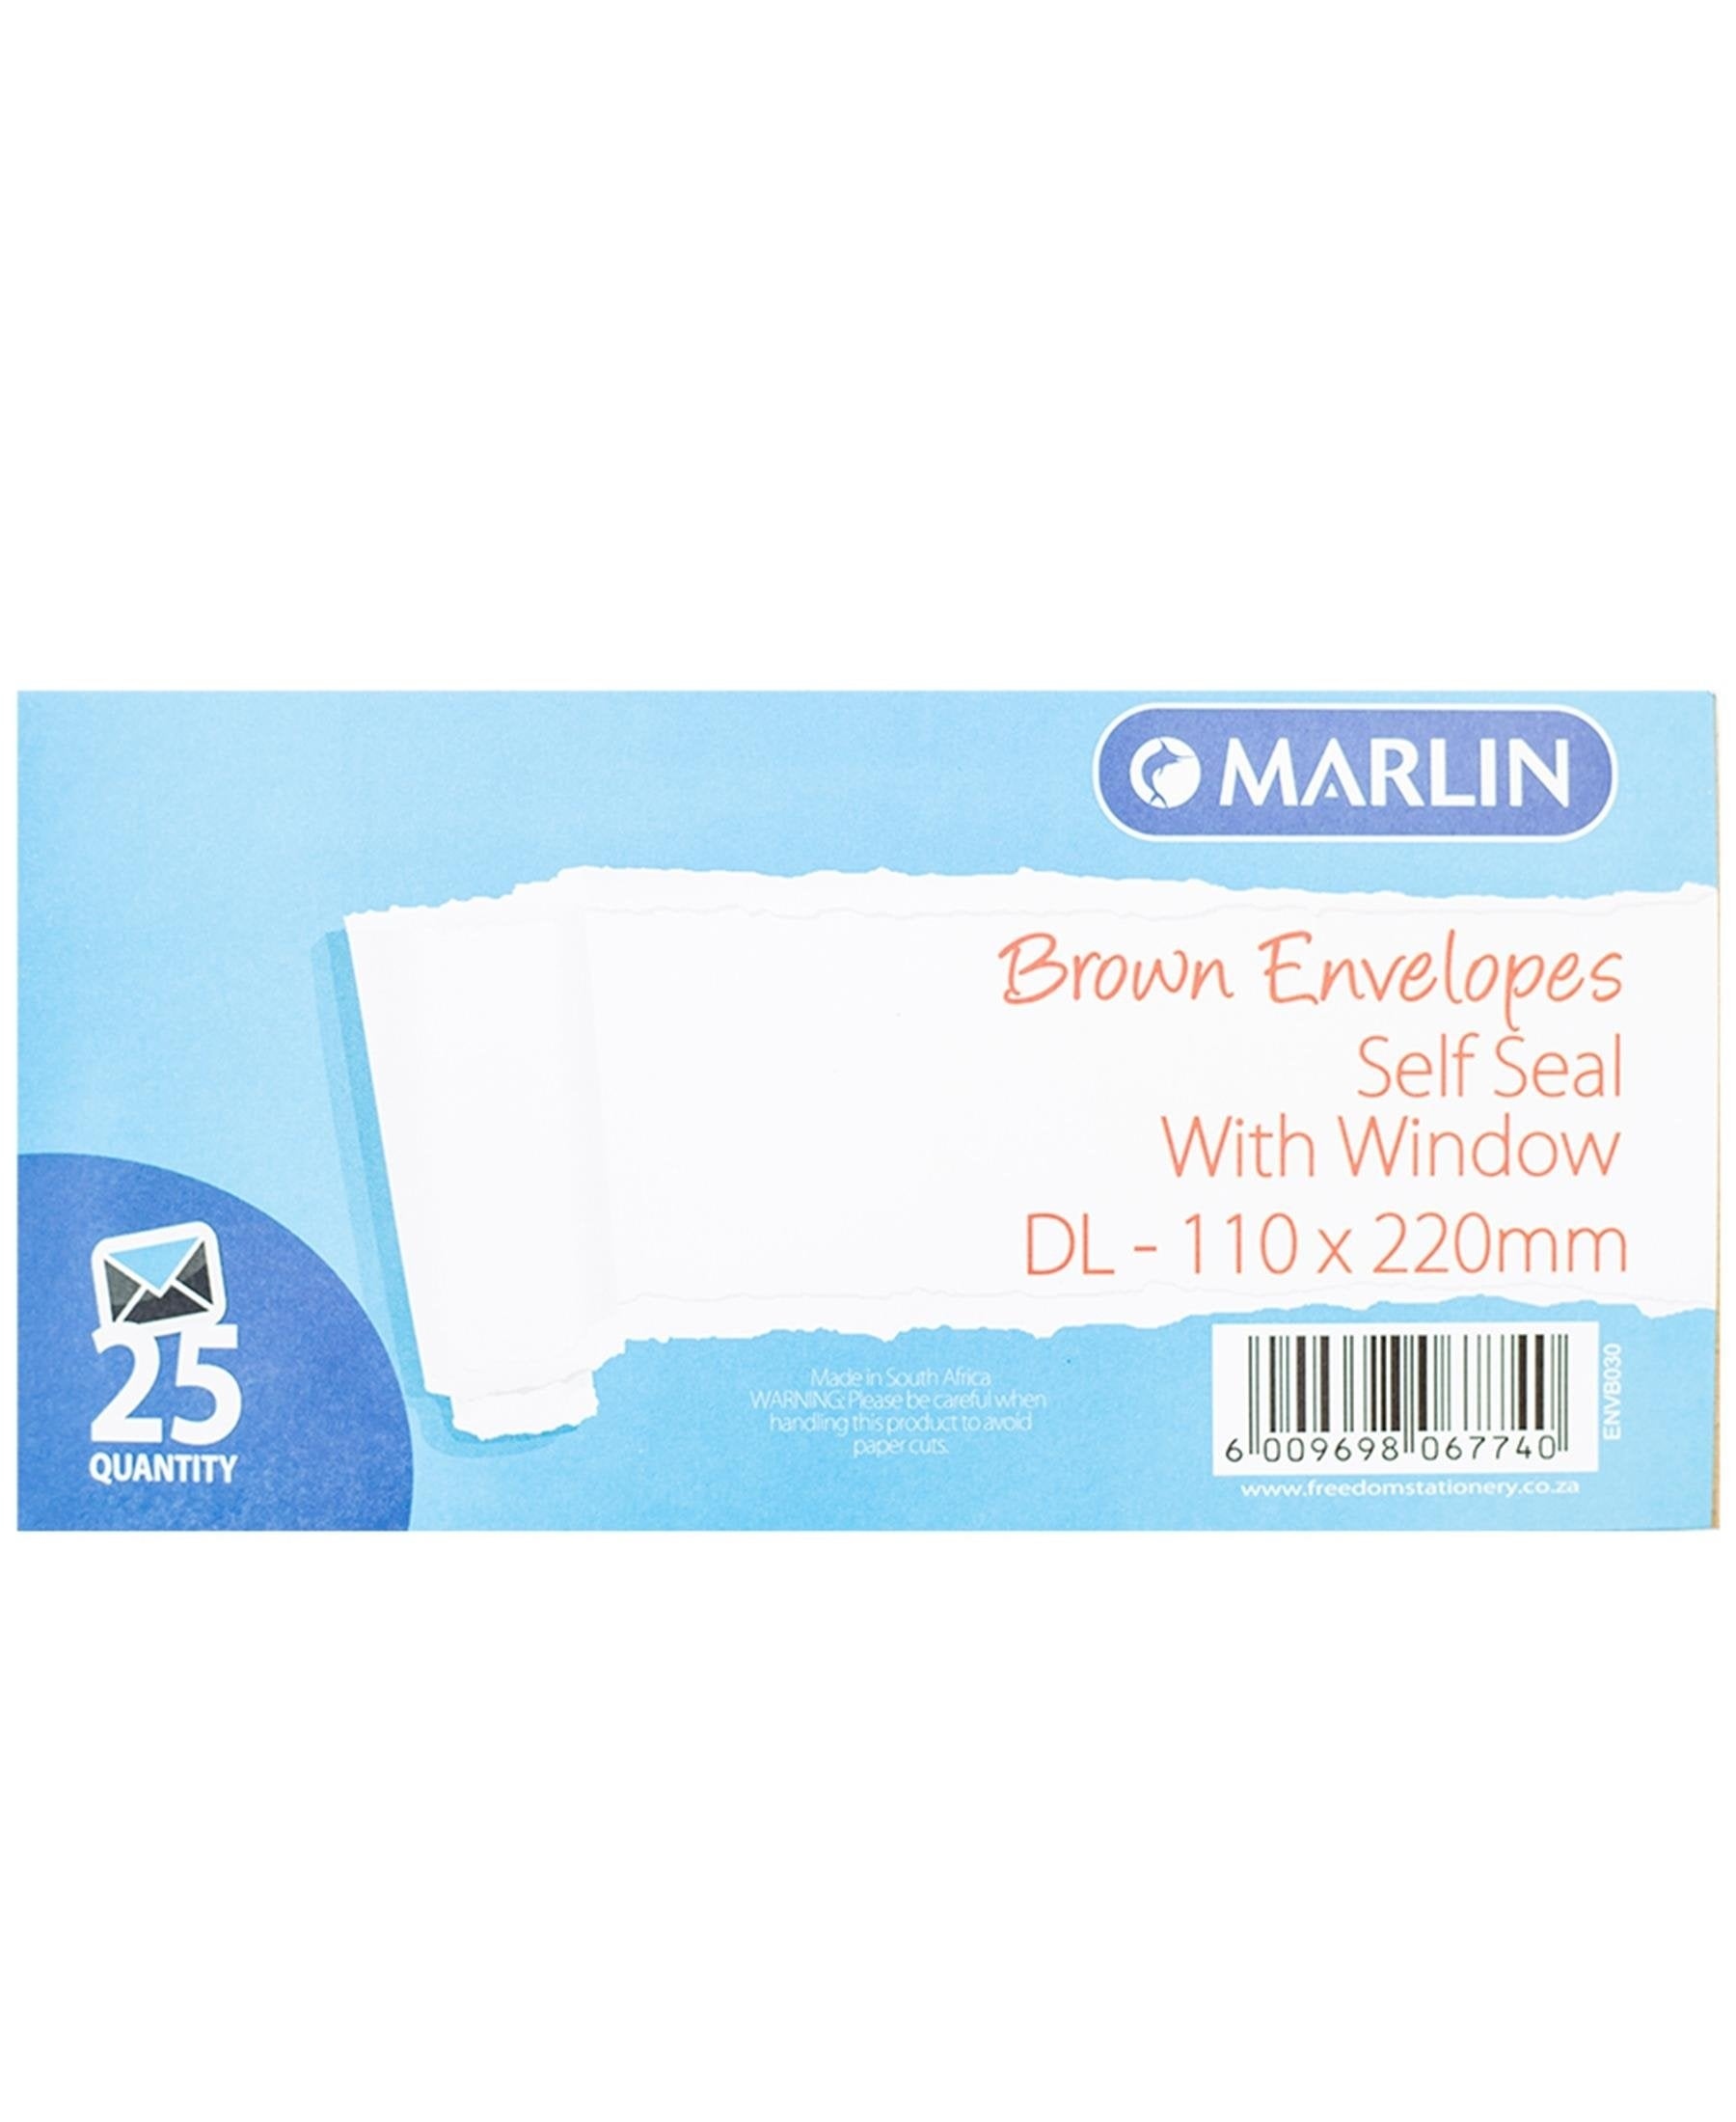 Marlin 25 Pack DL Self Seal Envelopes - Brown